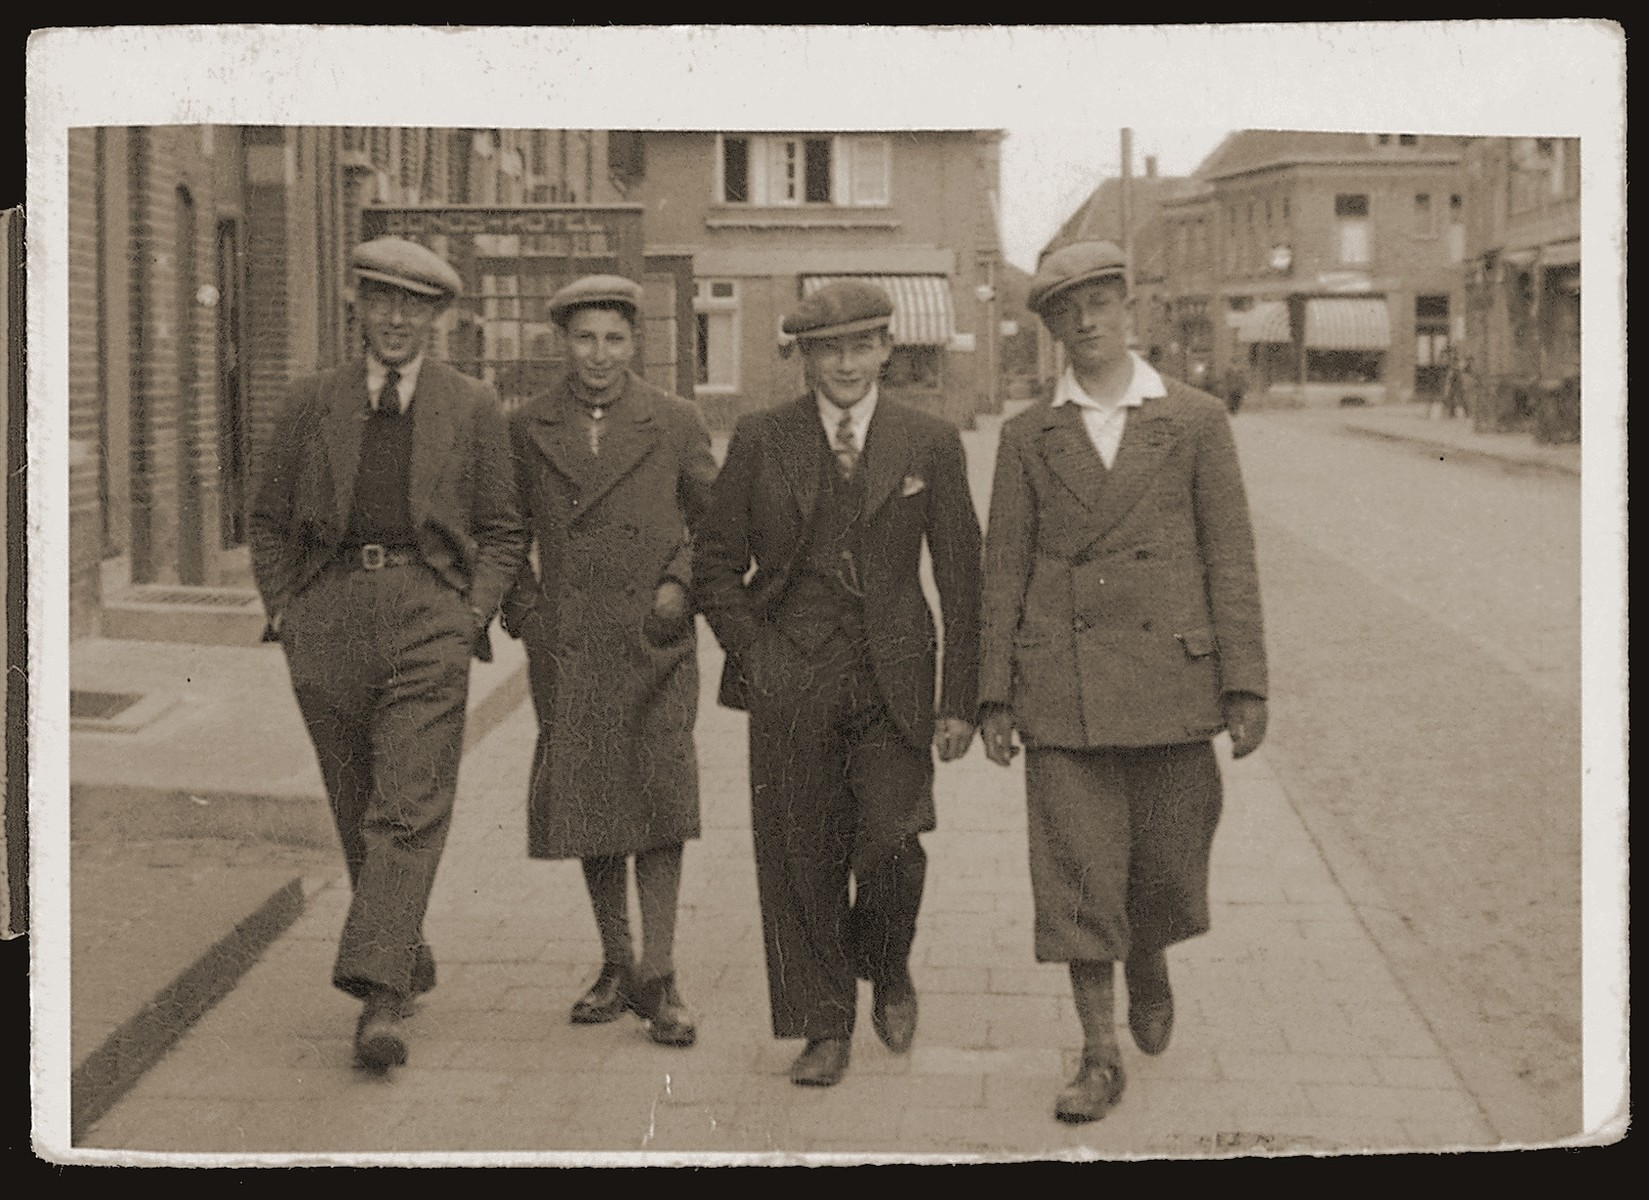 Four Jewish friends walk along a street in Boekelo.  Pictured from left to right are: Lou Slosser, Richard Meijer, Michel Meijer (cousin), and Meyer Godschalk.